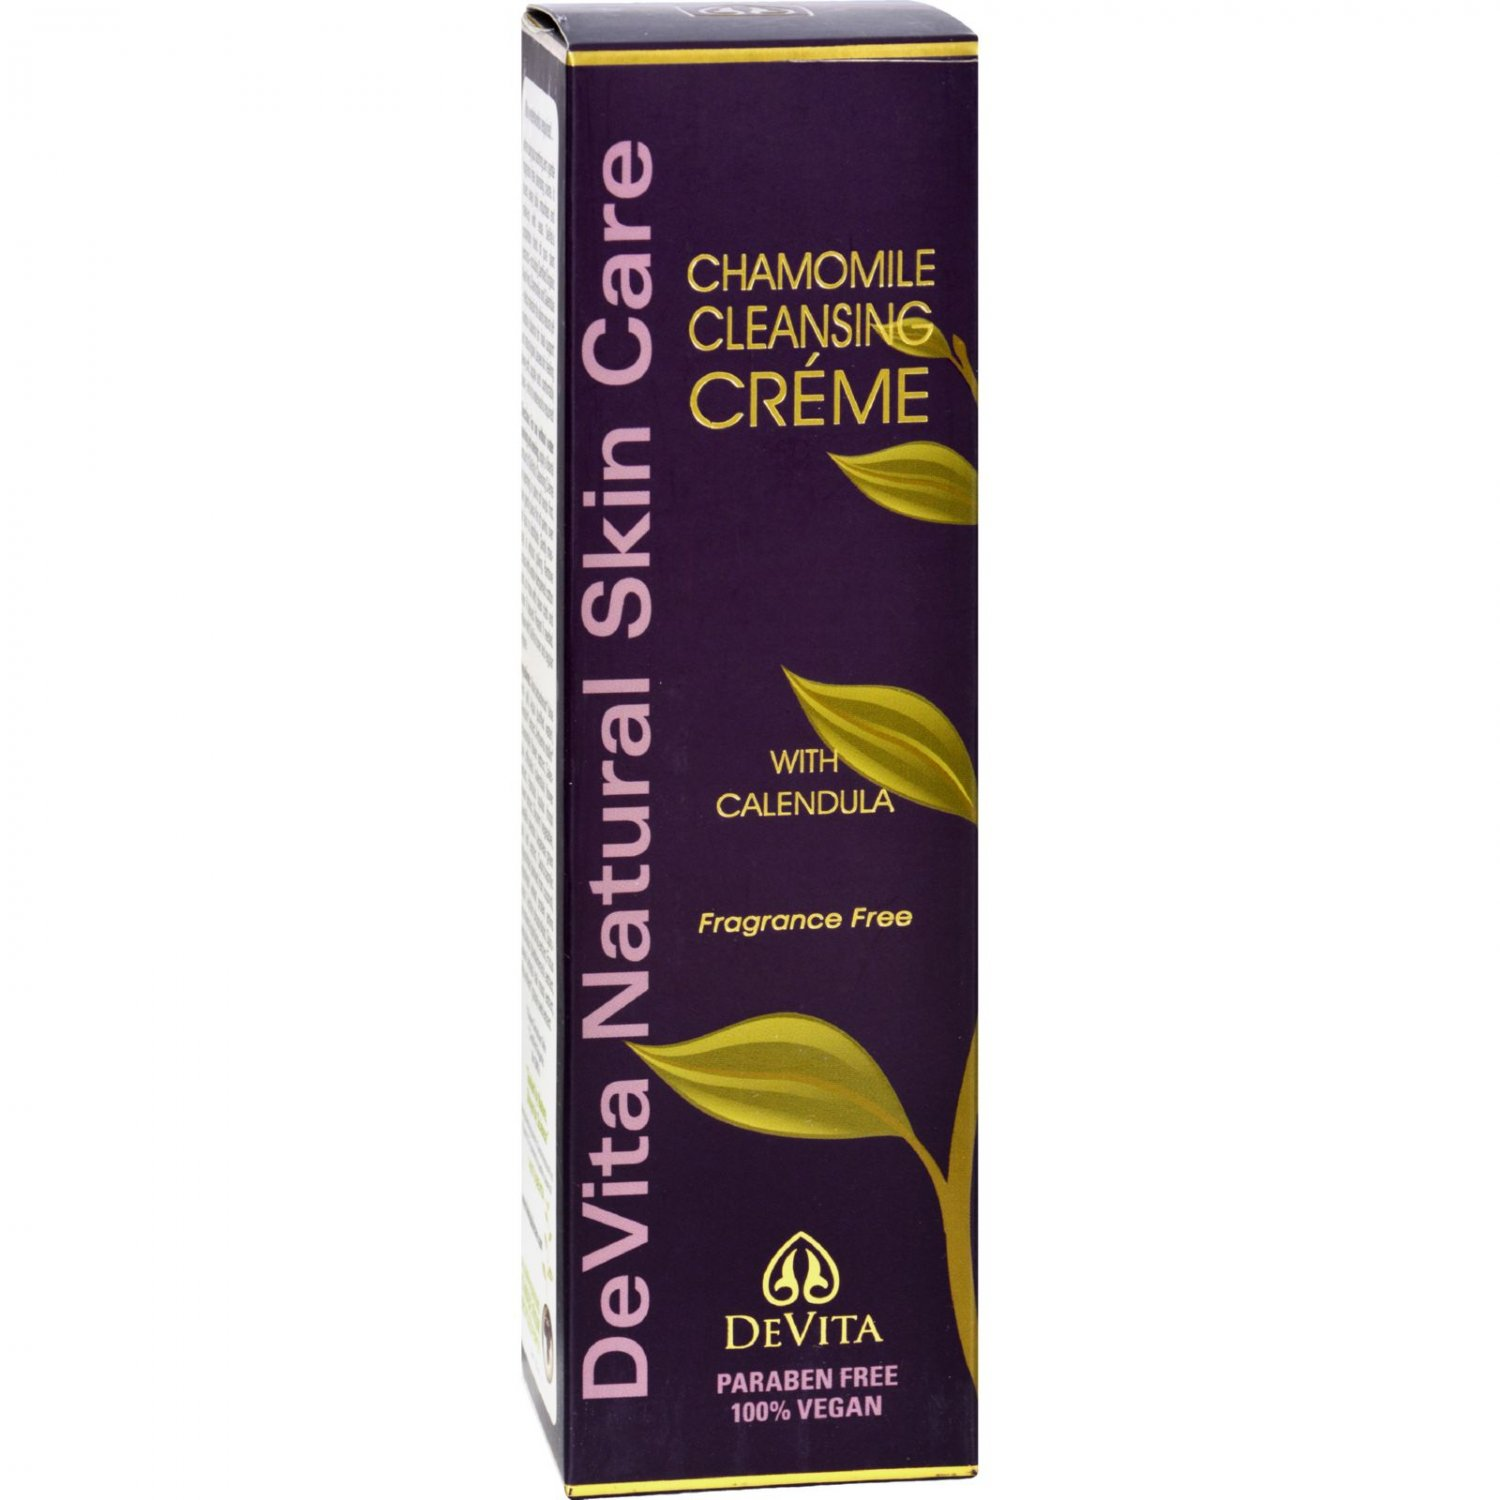 Devita Natural Skin Care Cleanse Creme - Chamomile - 5 fl oz